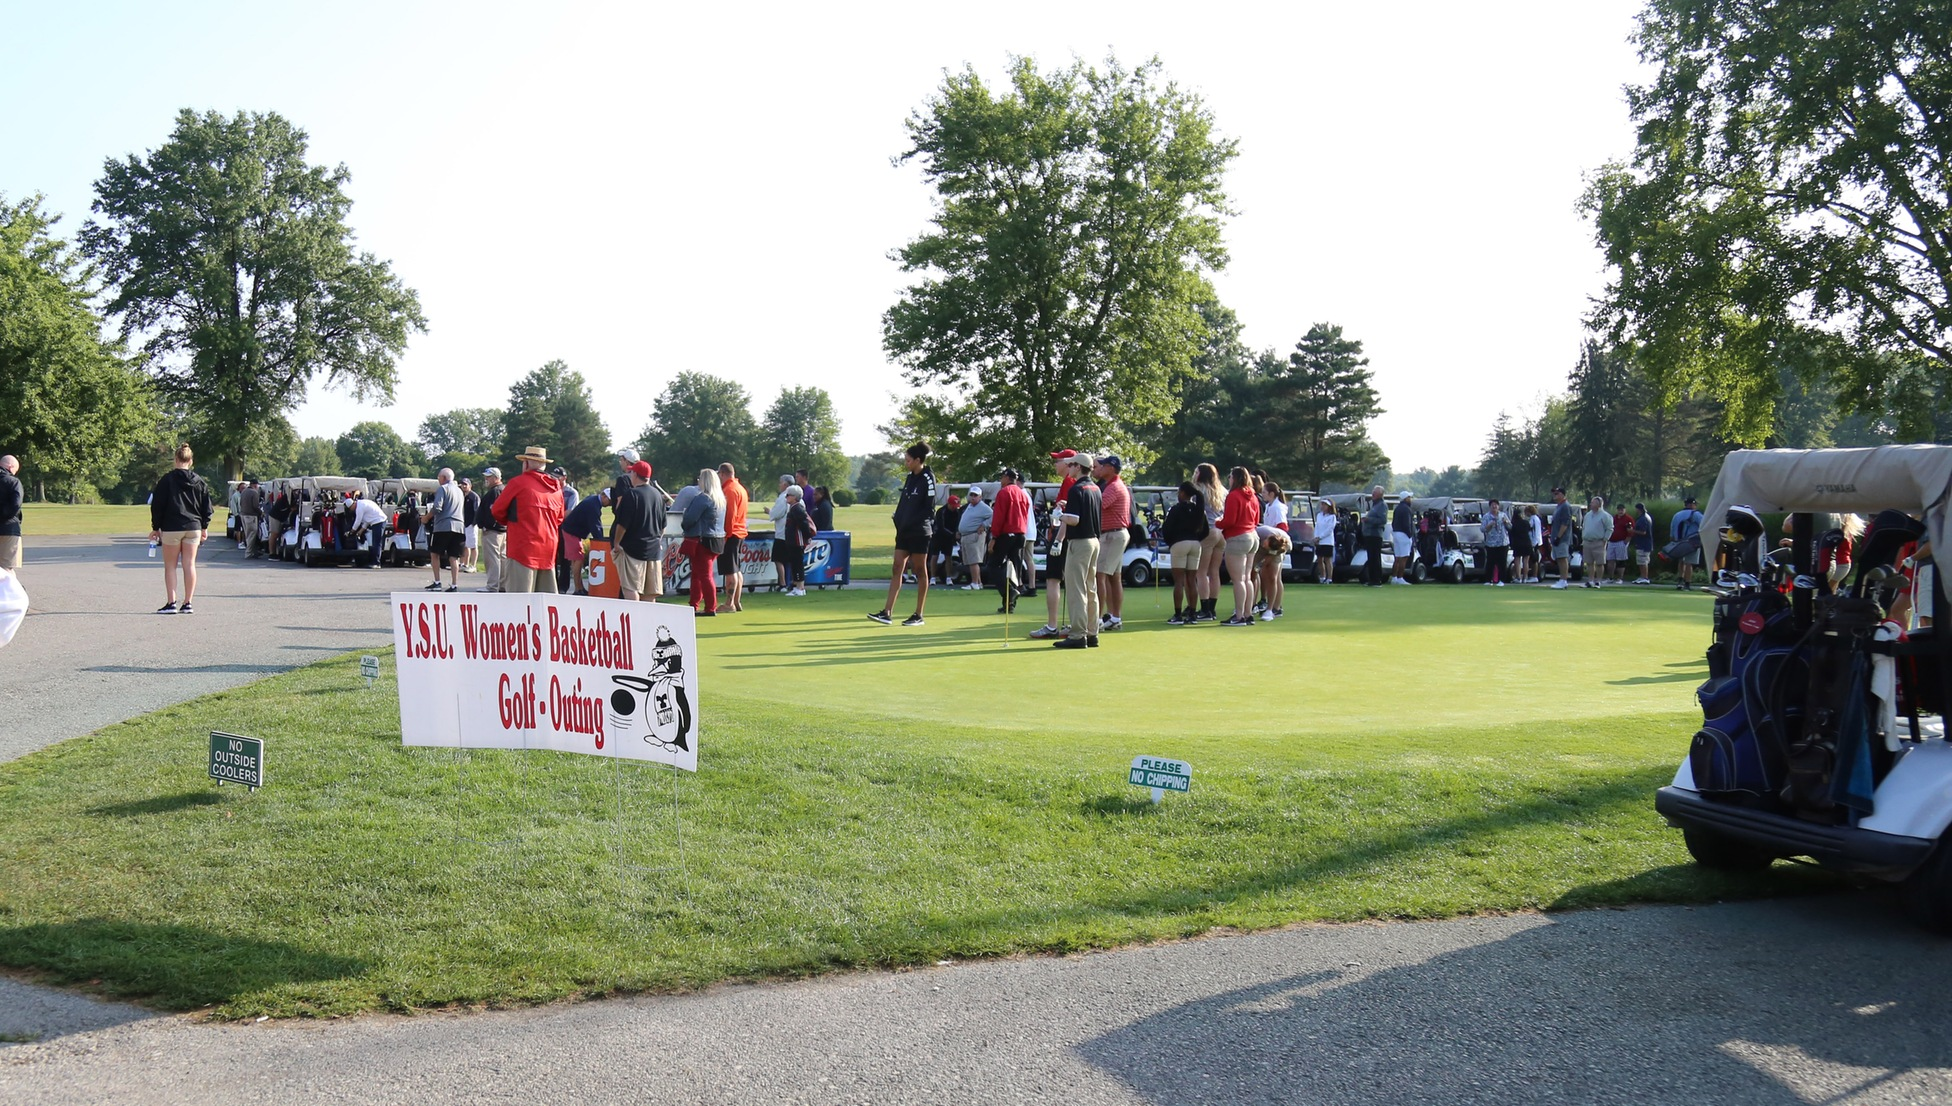 The YSU women's basketball golf outing is held annually at the end of August